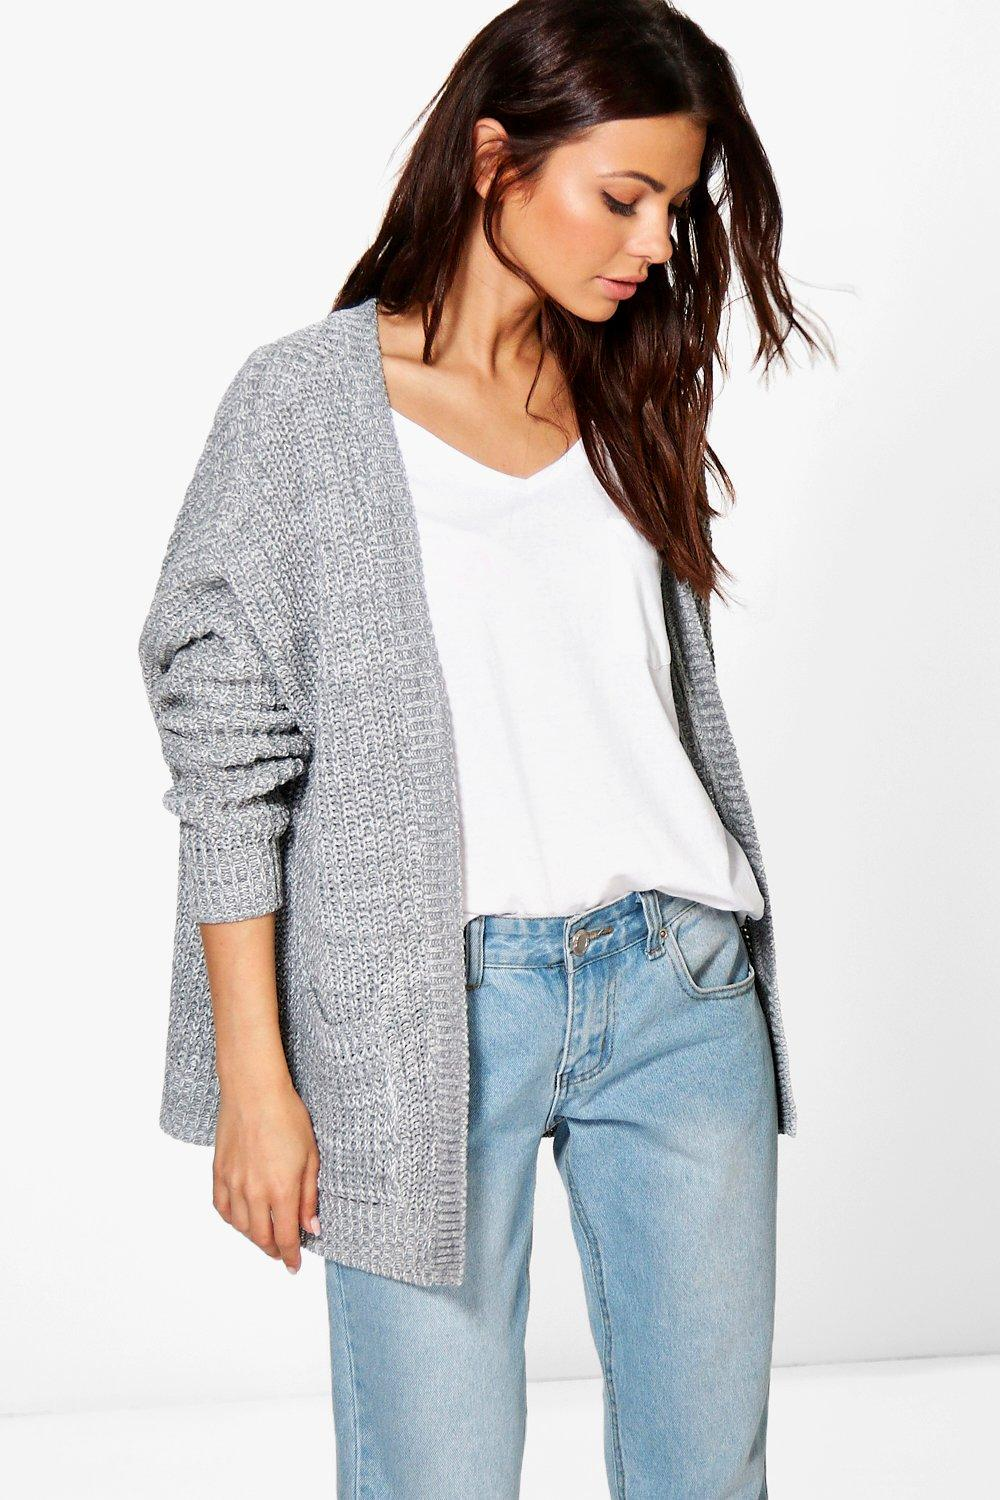 Find great deals on eBay for cheap cardigans. Shop with confidence.